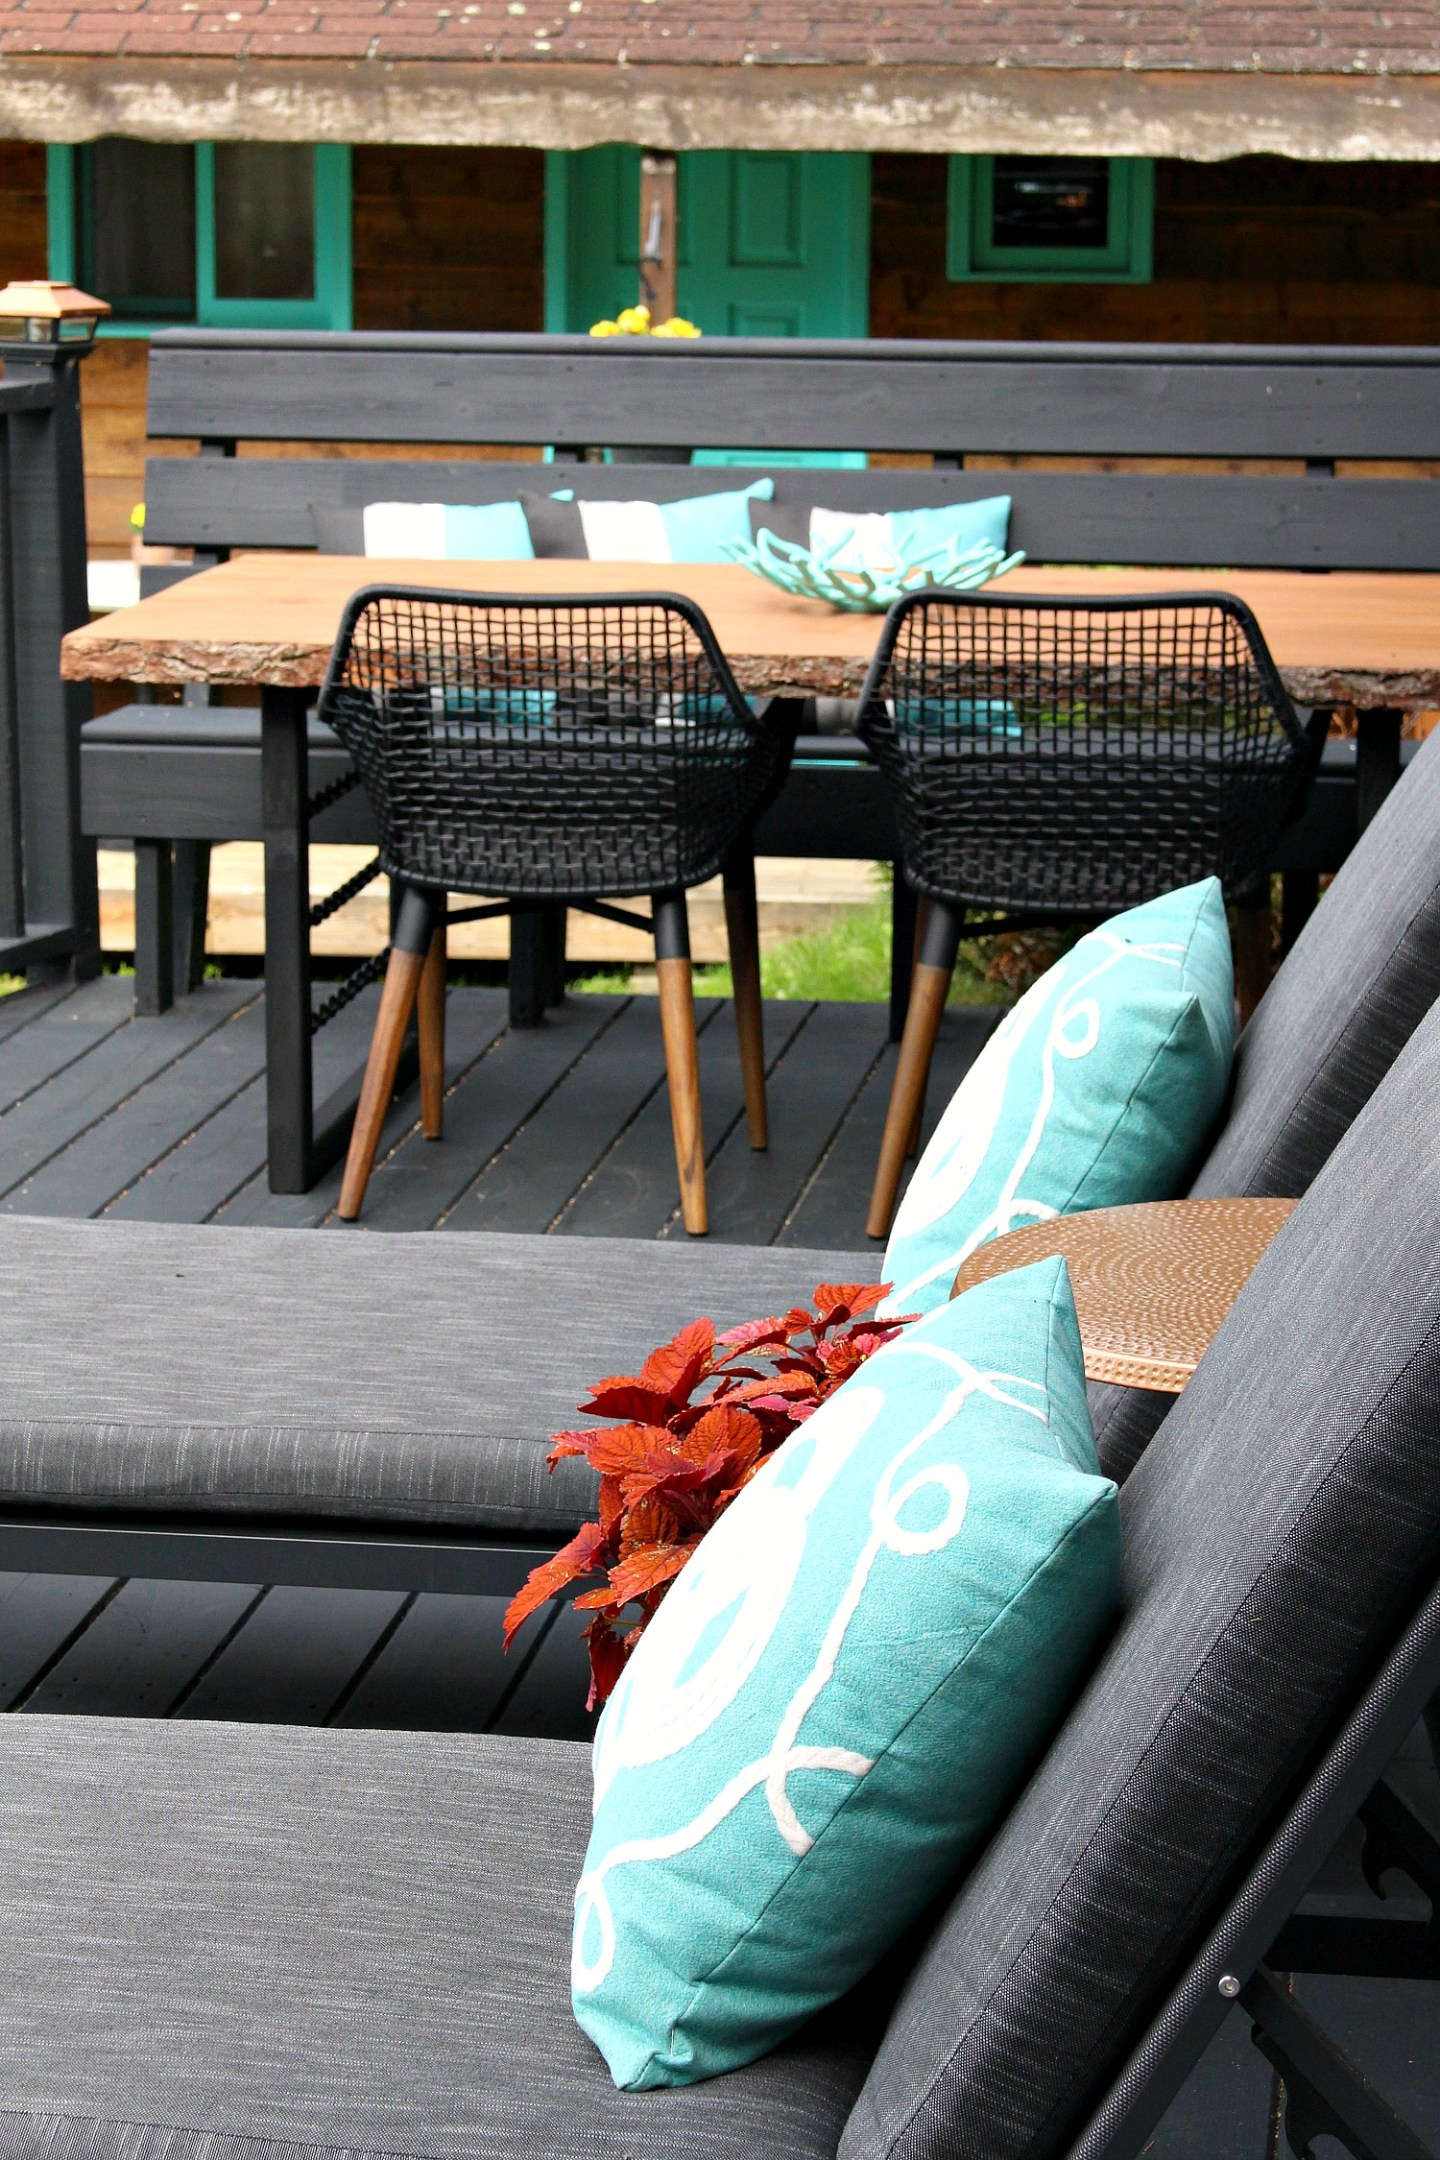 DIY Live Edge Table with DIY Welded Chain Legs | Dark and Moody Rustic Modern Patio Decor